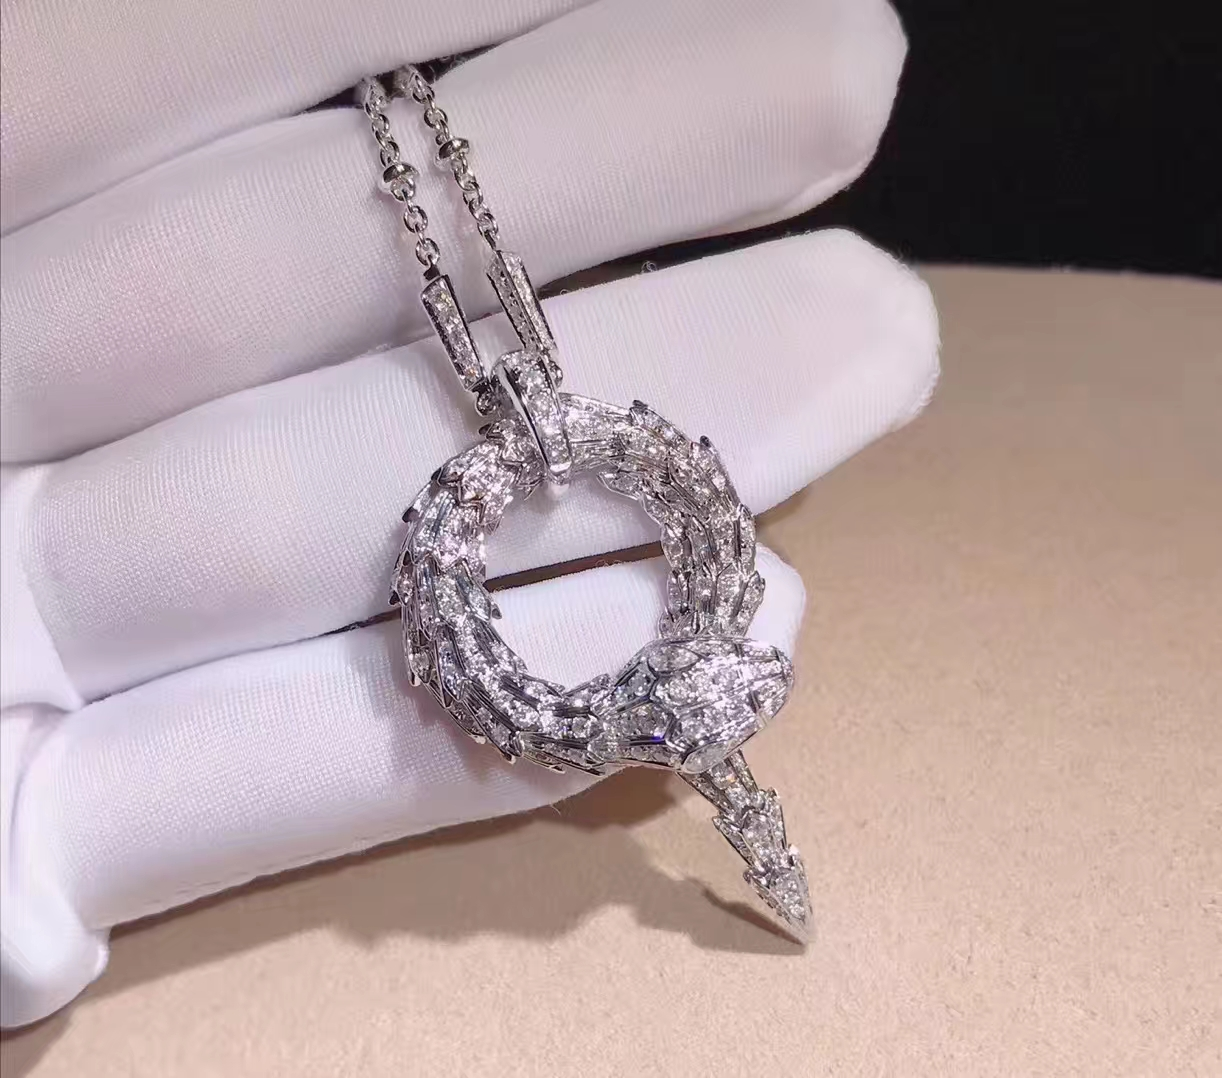 18k White Gold Bulgari Serpenti Diamond Snake Pendant Necklace